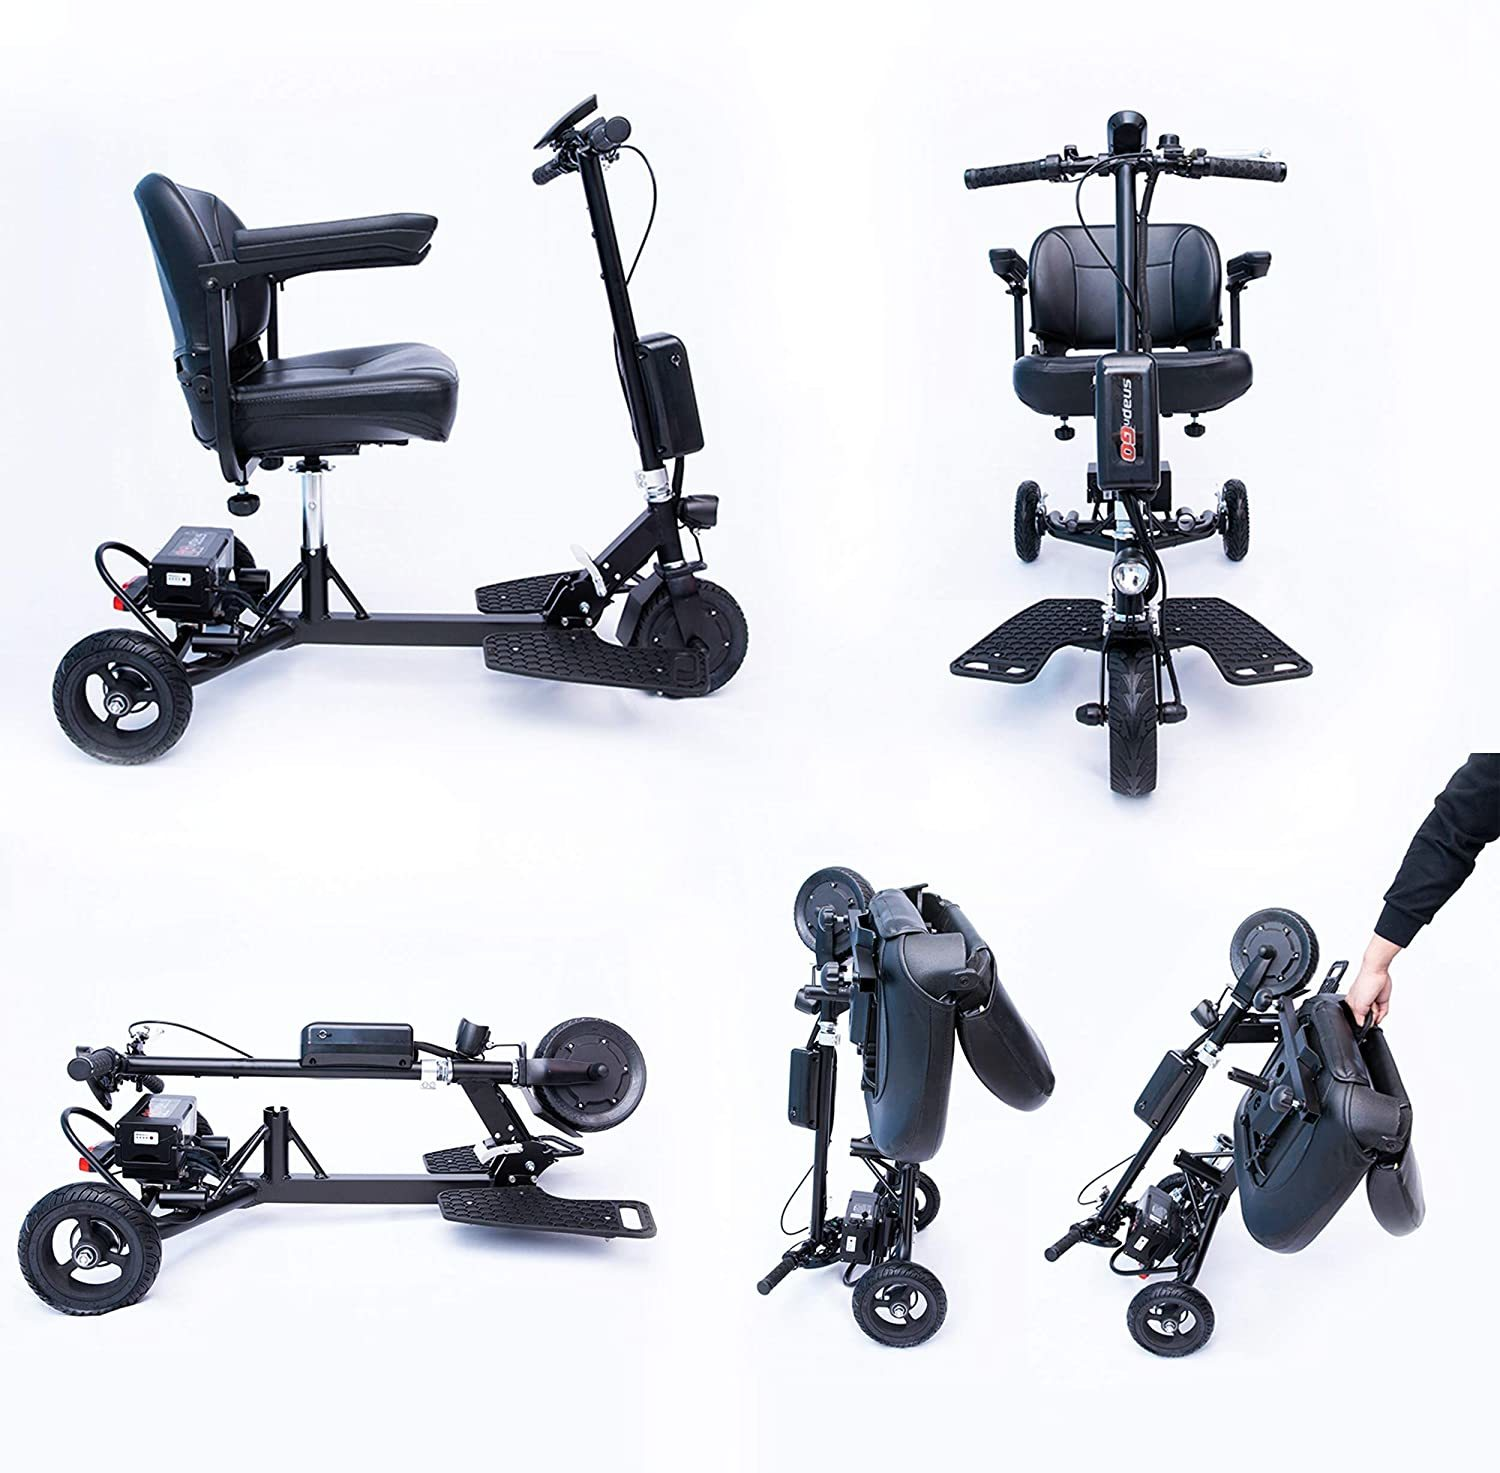 Glion Snap n Go 3- wheel mobility scooter